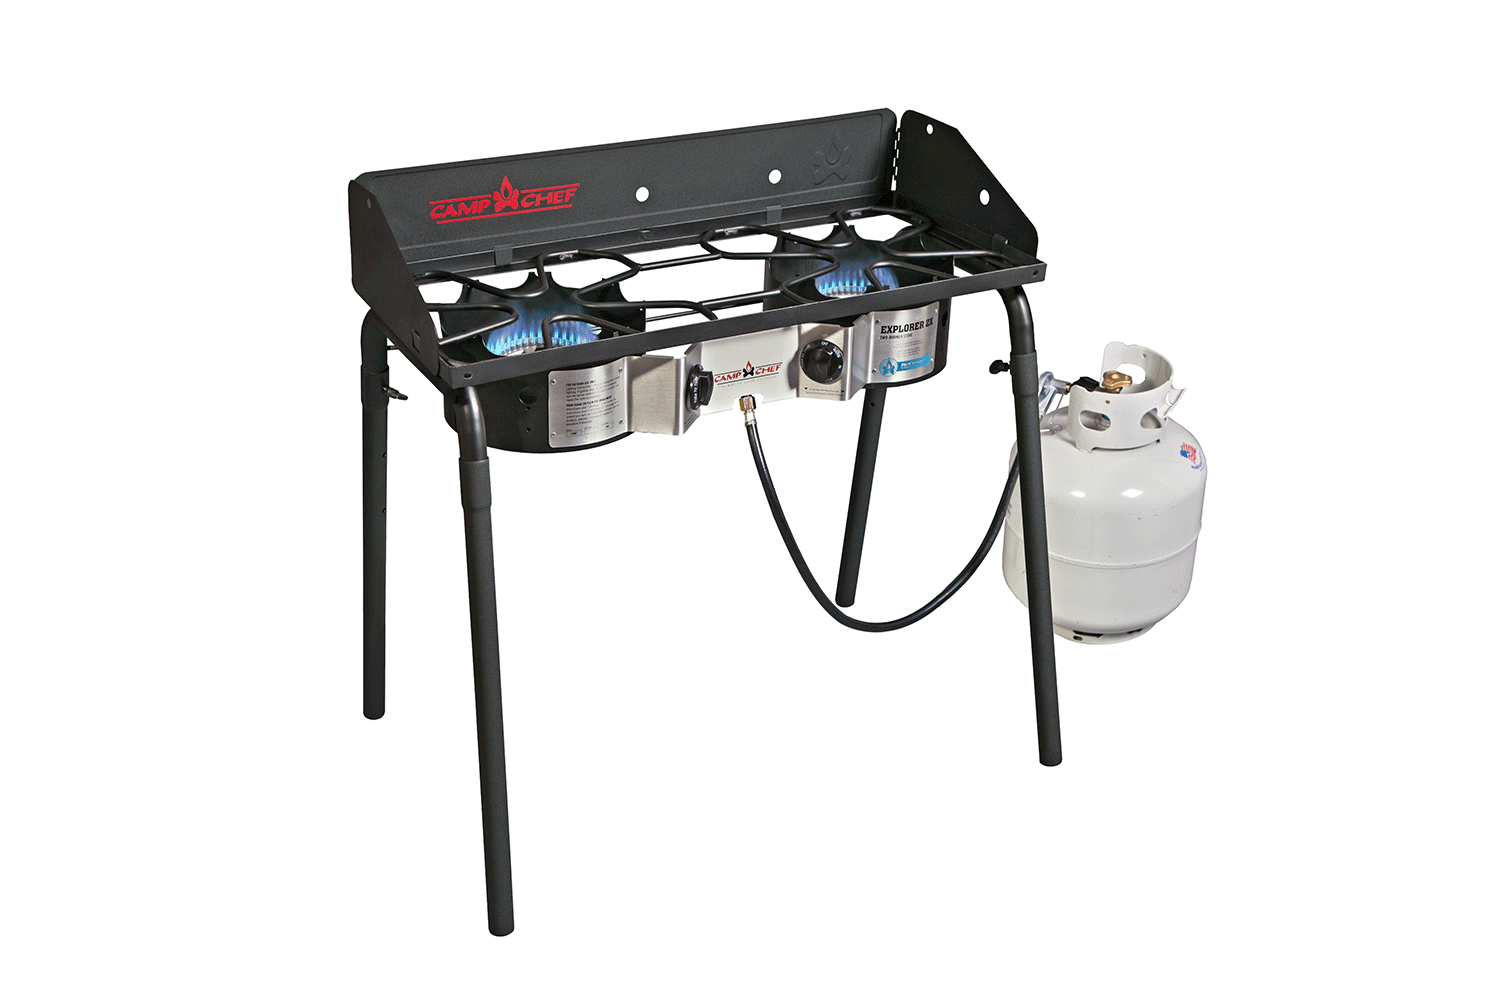 Camp Chef Explorer Stove